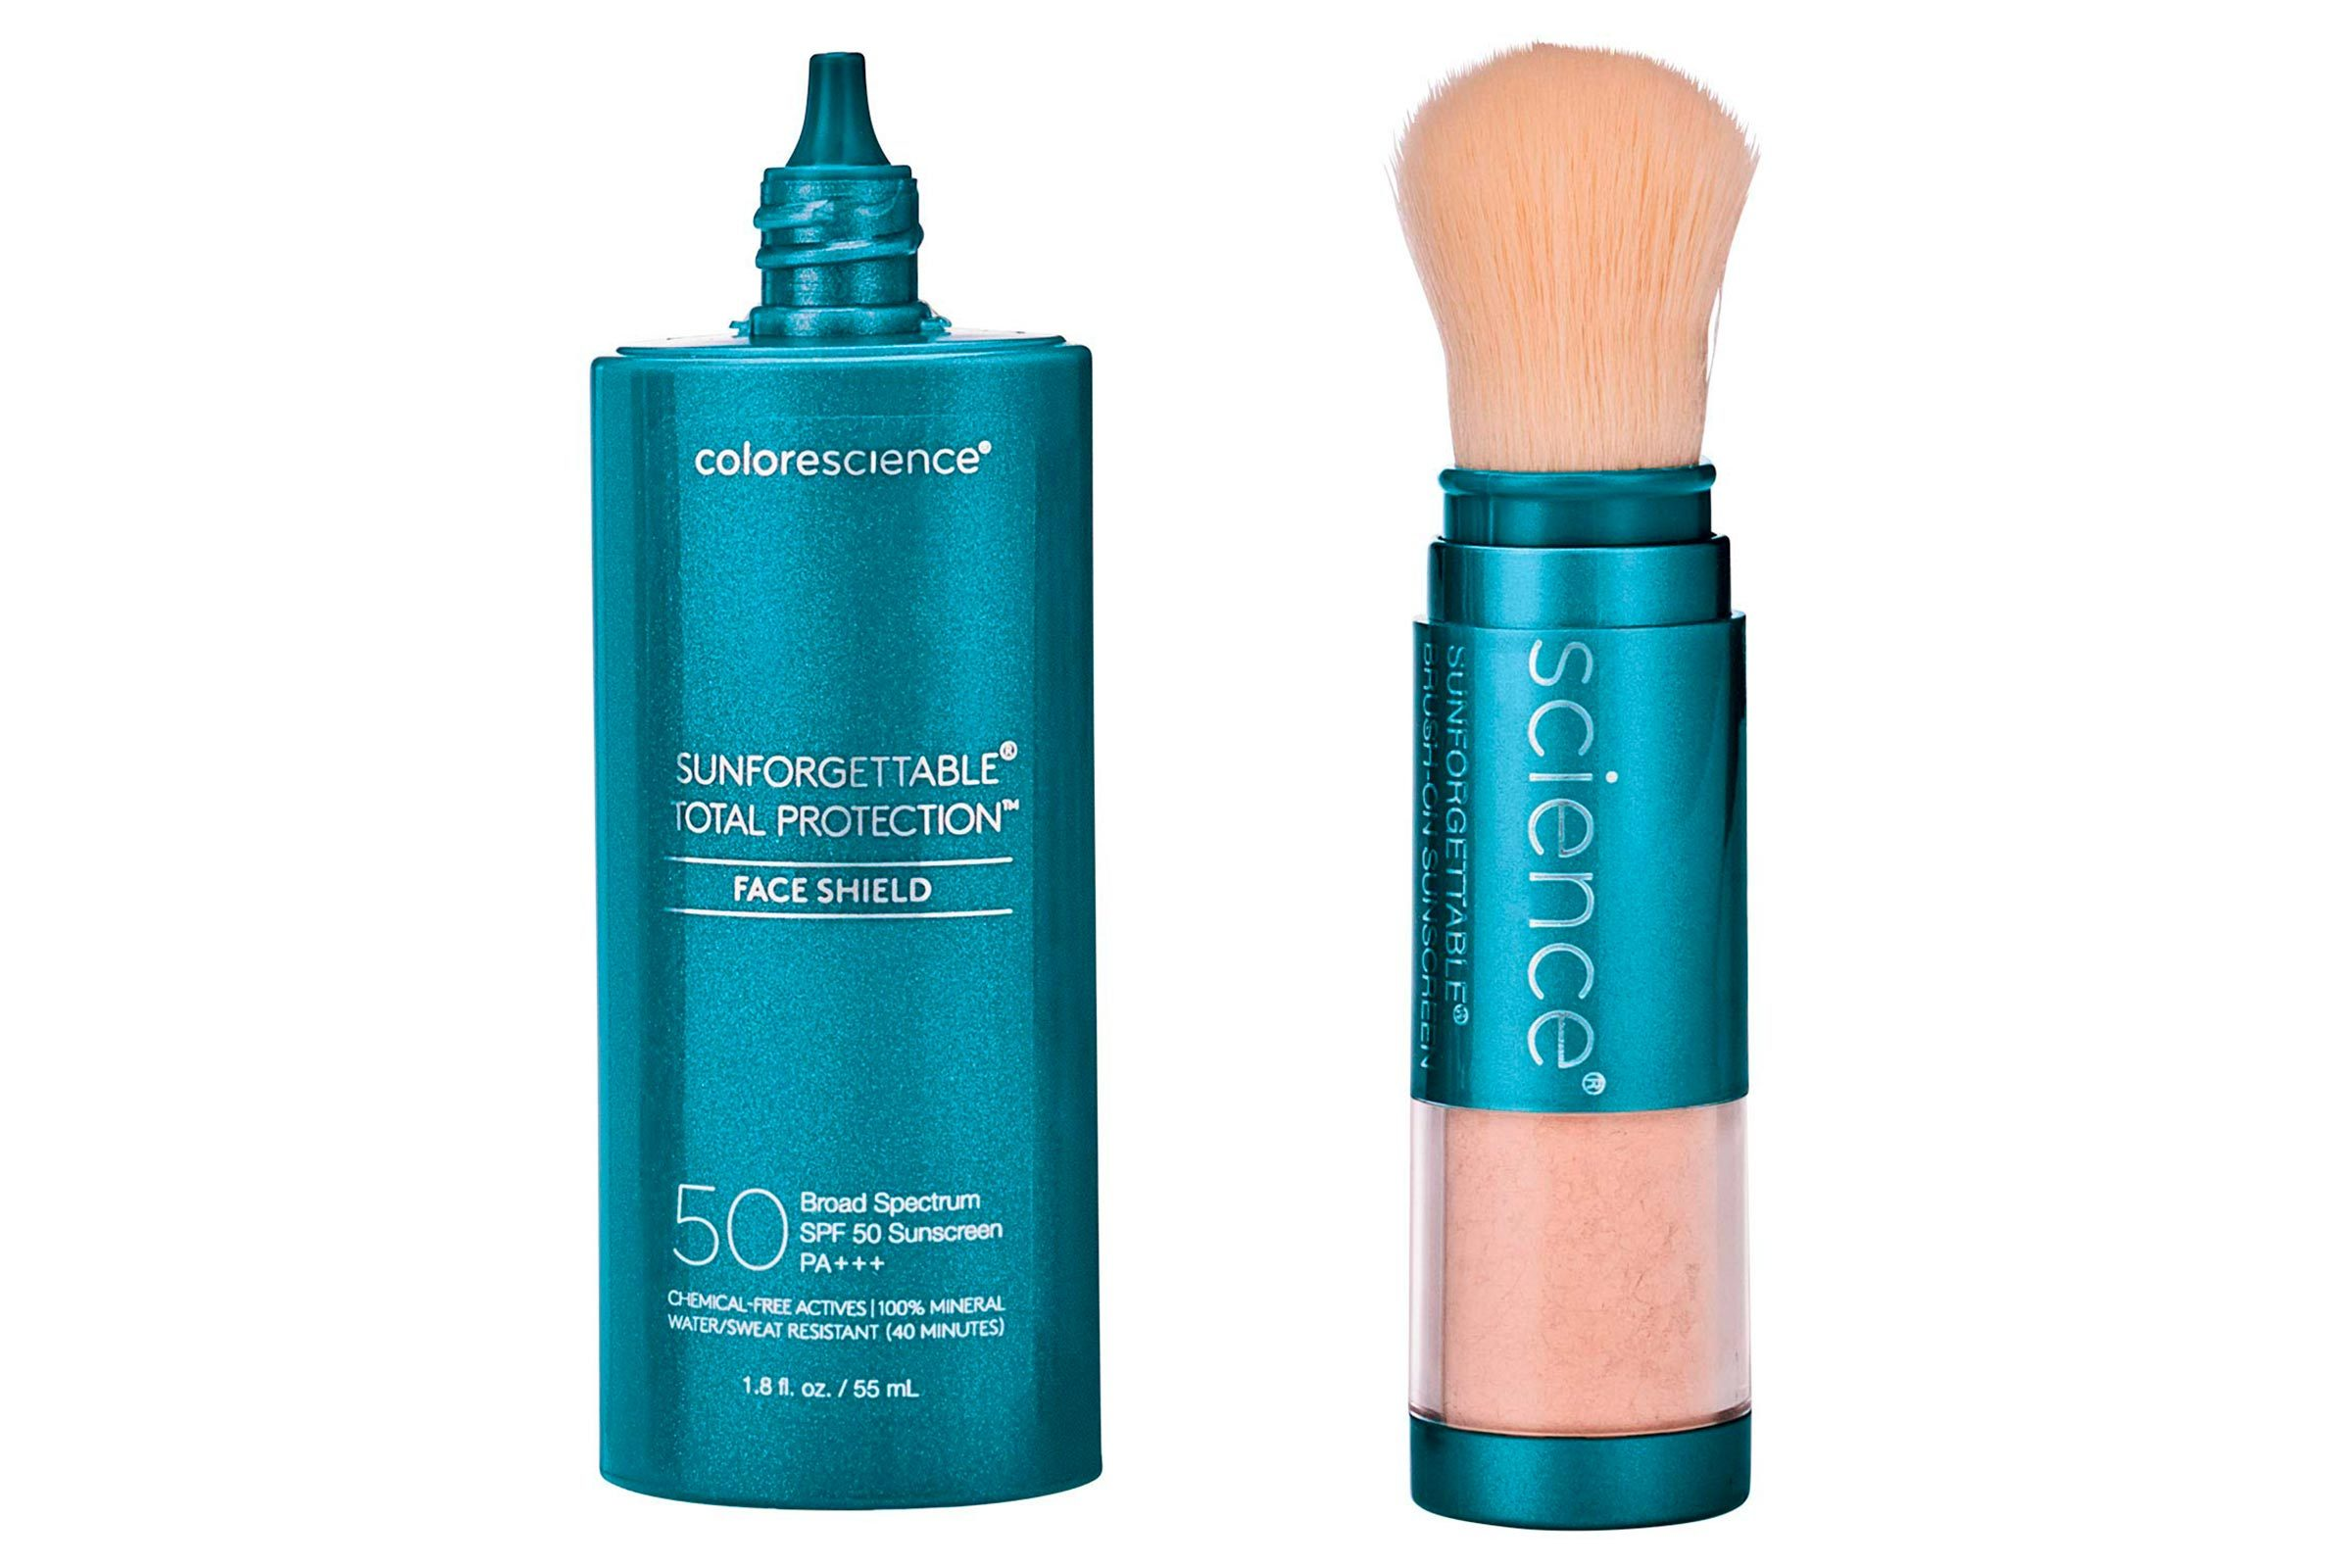 Colorscience sun protection duo